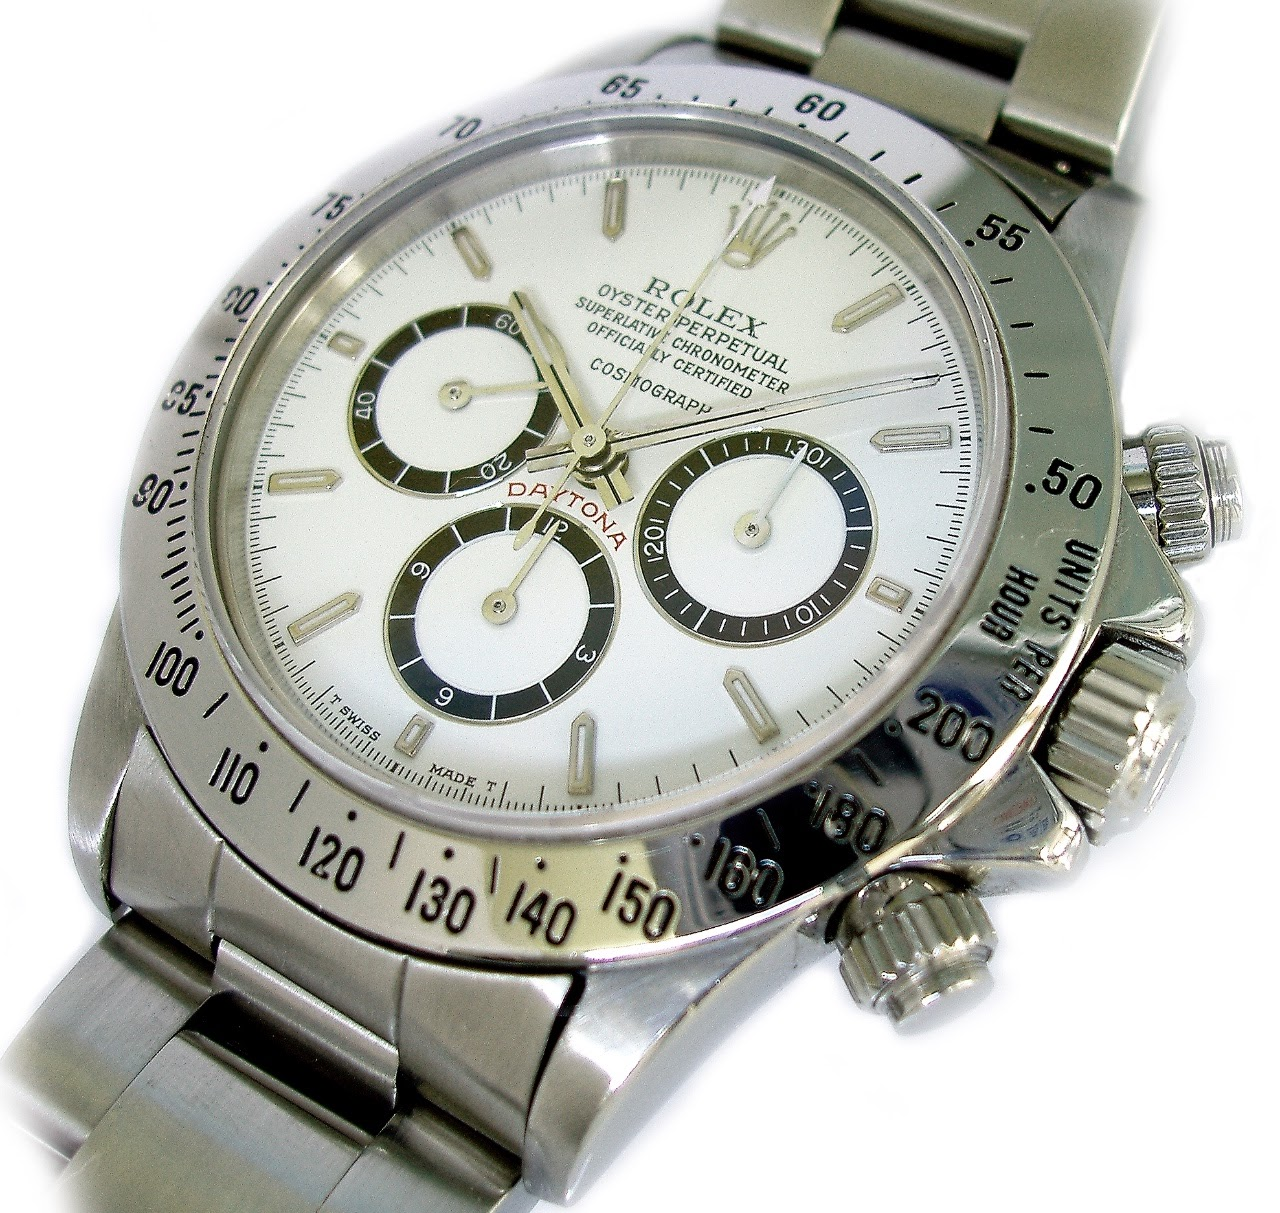 e3323c3a189 Rolex - Rolex Daytona ref.16520 Collecting the Legend